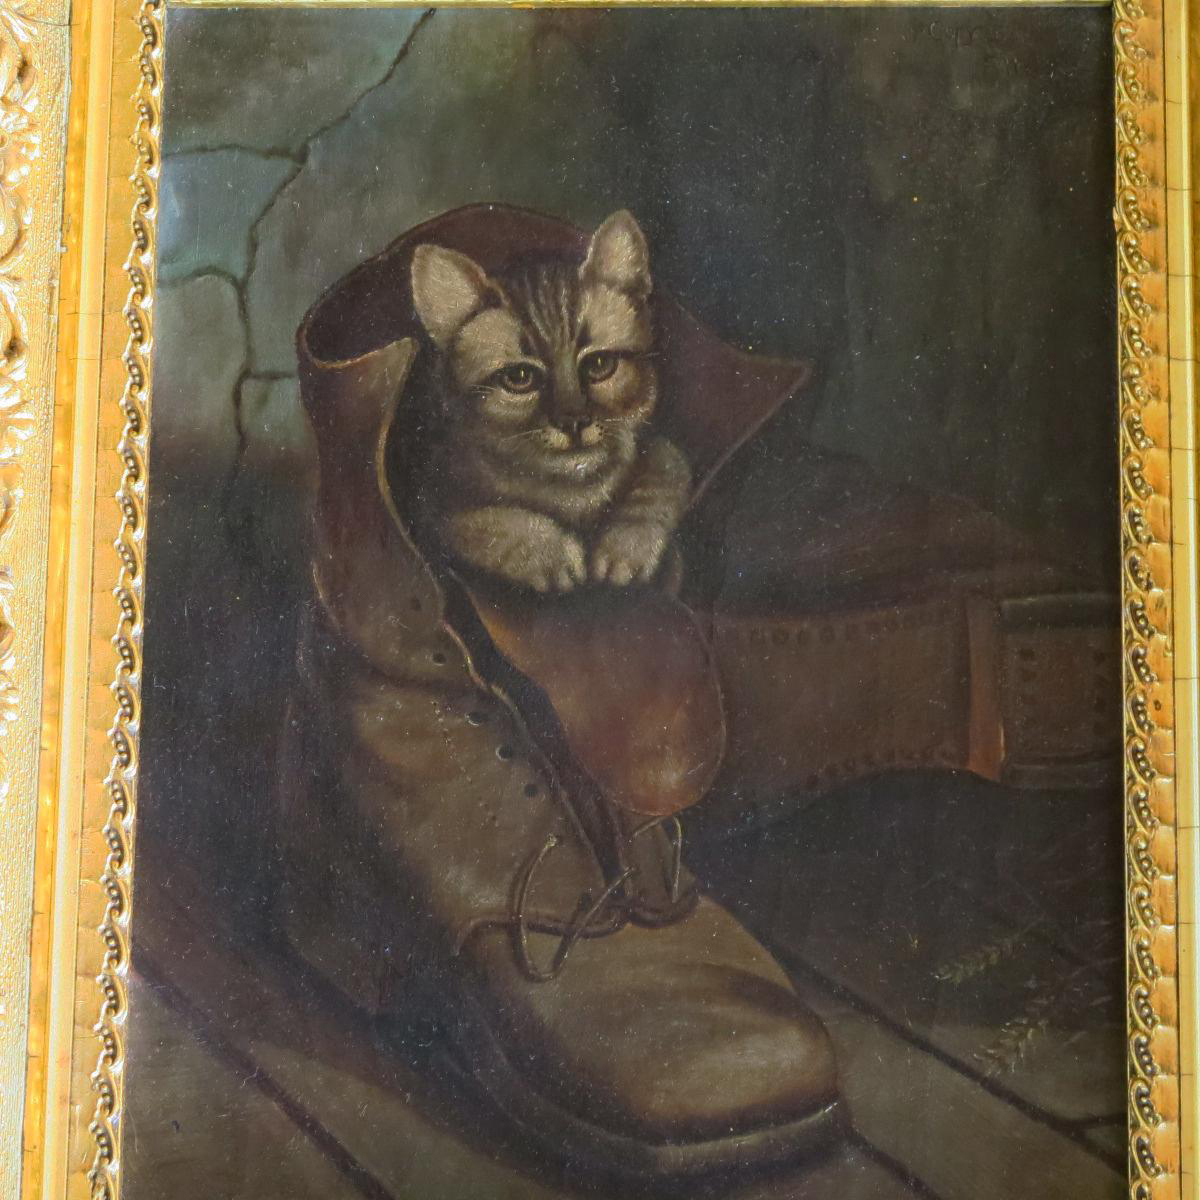 Foll Art Oil Painting after Frank Paton's Puss in Boots